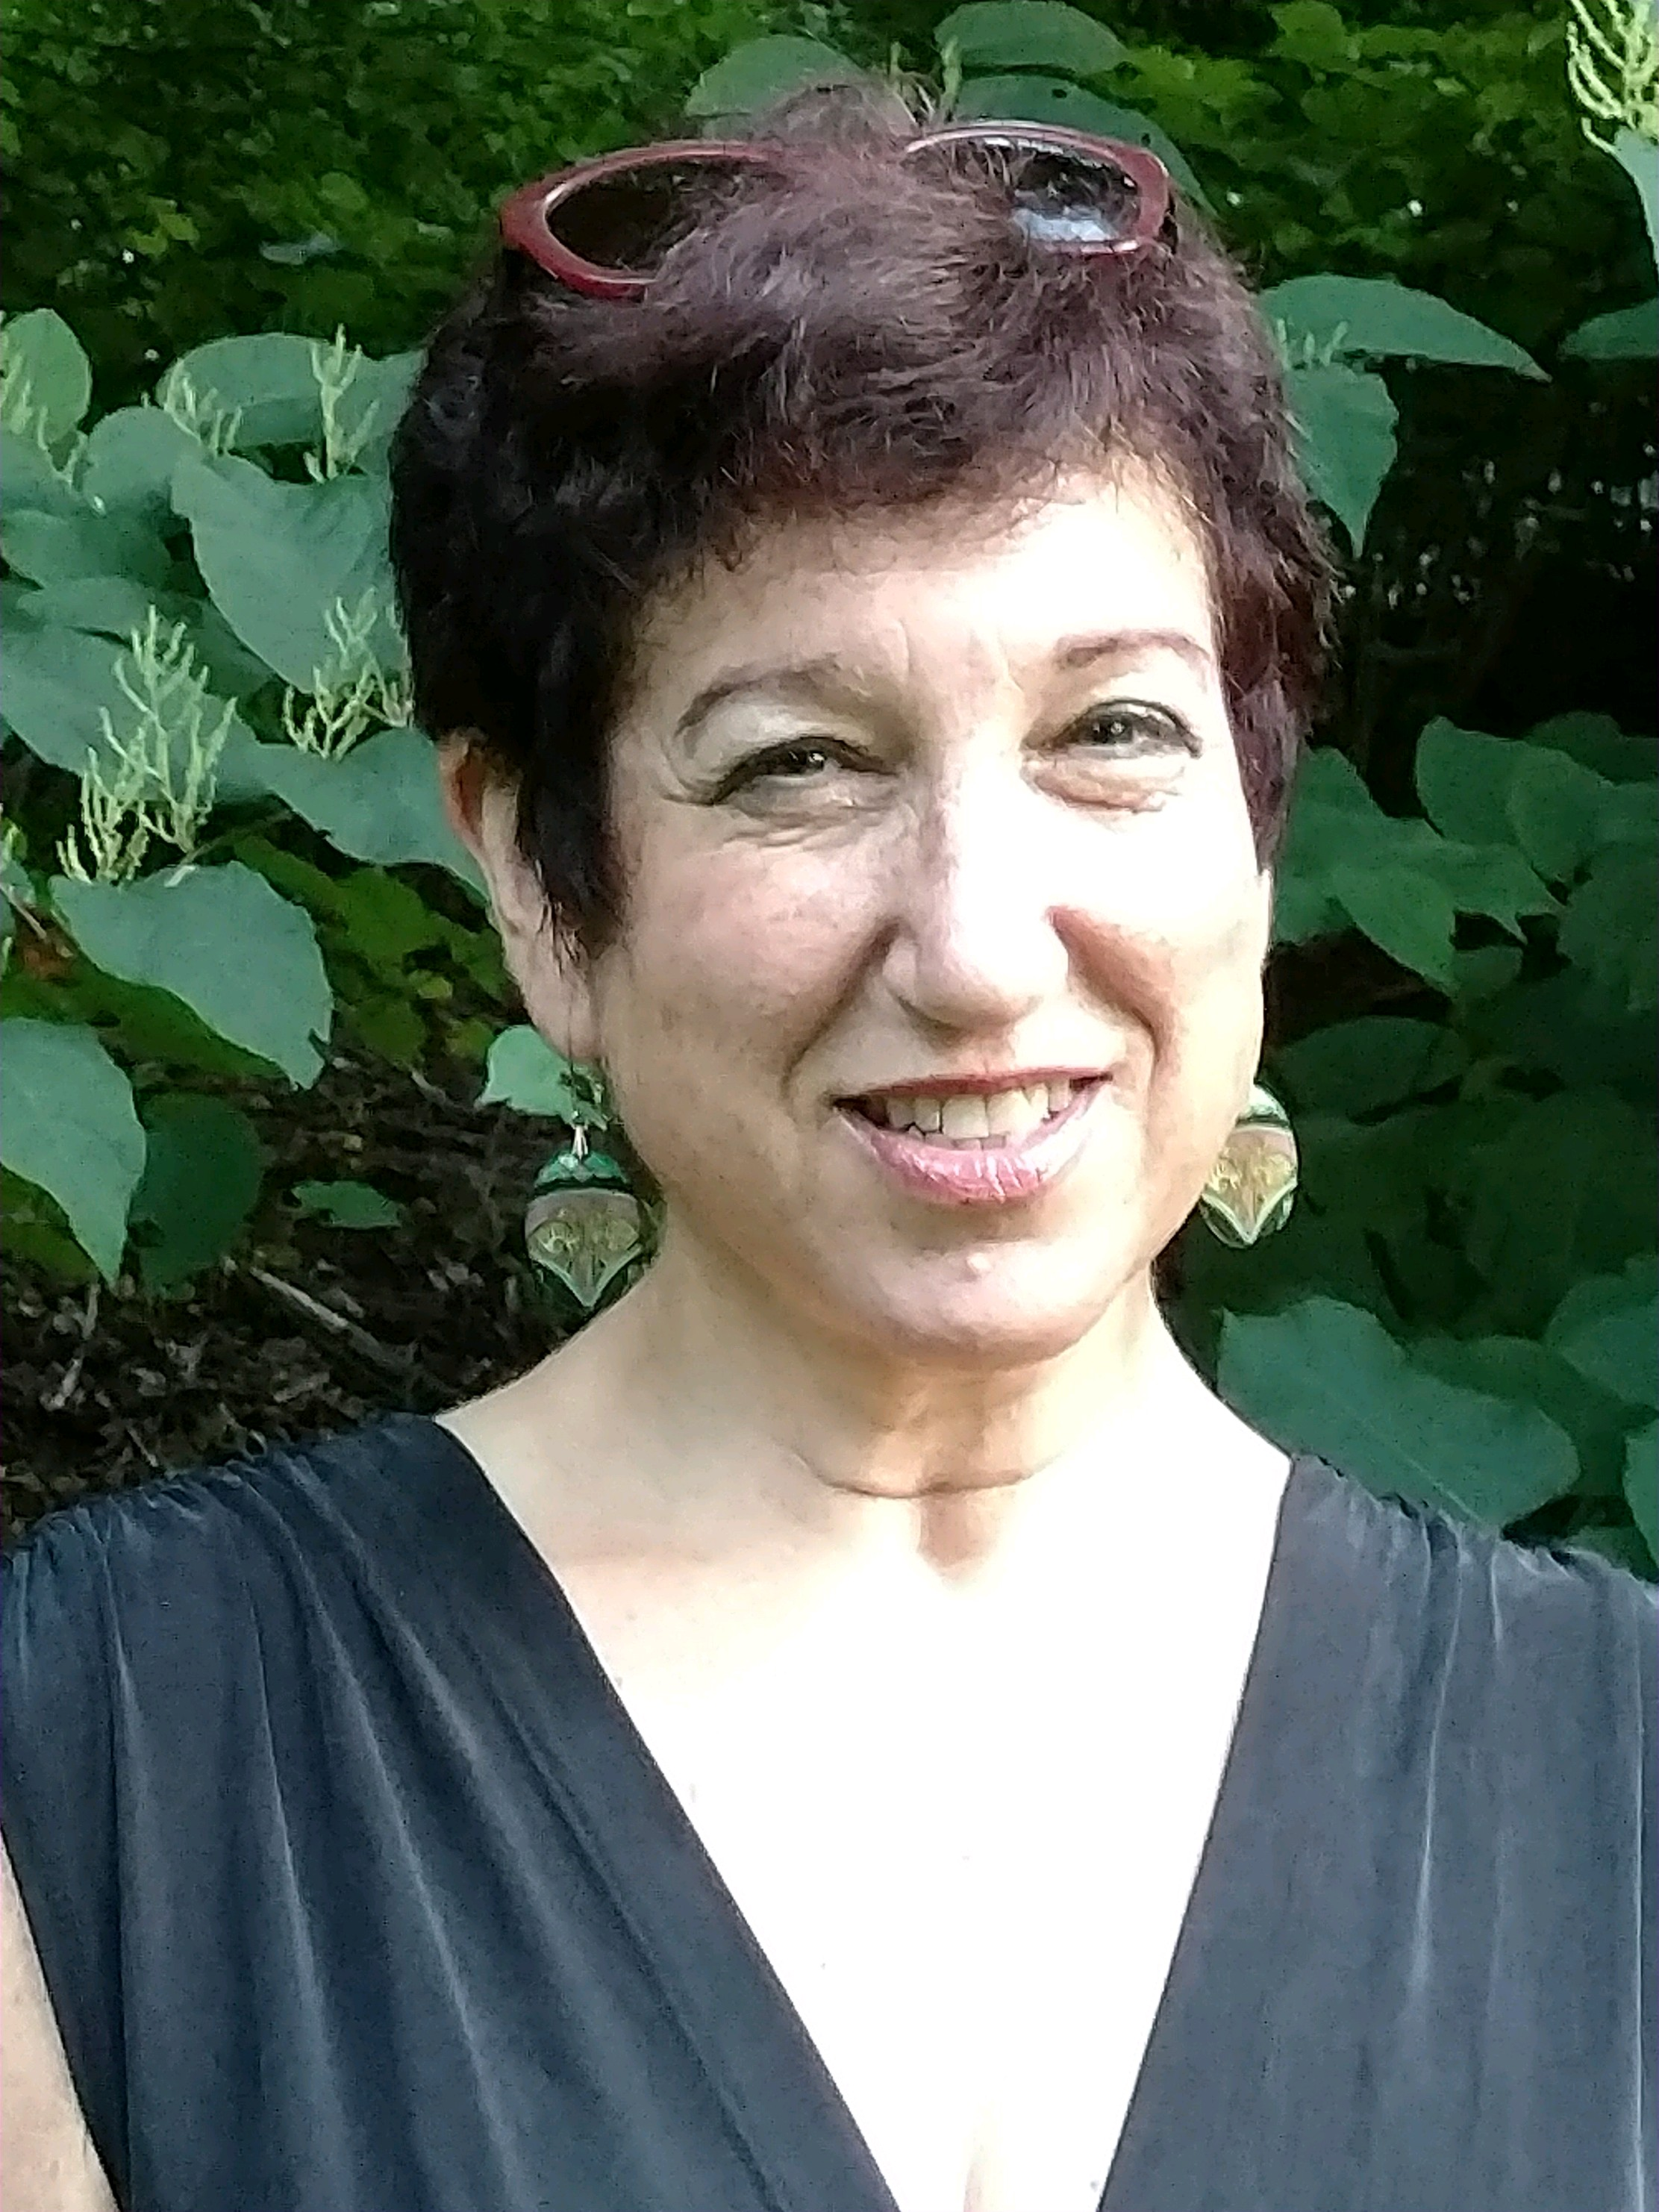 Debbie Schlossberg, Board of Directors   Debbie is a social worker with the ALS Association, Greater NY Chapter.  She is the mother of an adult son with developmental disabilities.  Debbie lives in East Brunswick, NJ, with her husband, Shlomo Nessim, and their son, Yoav.